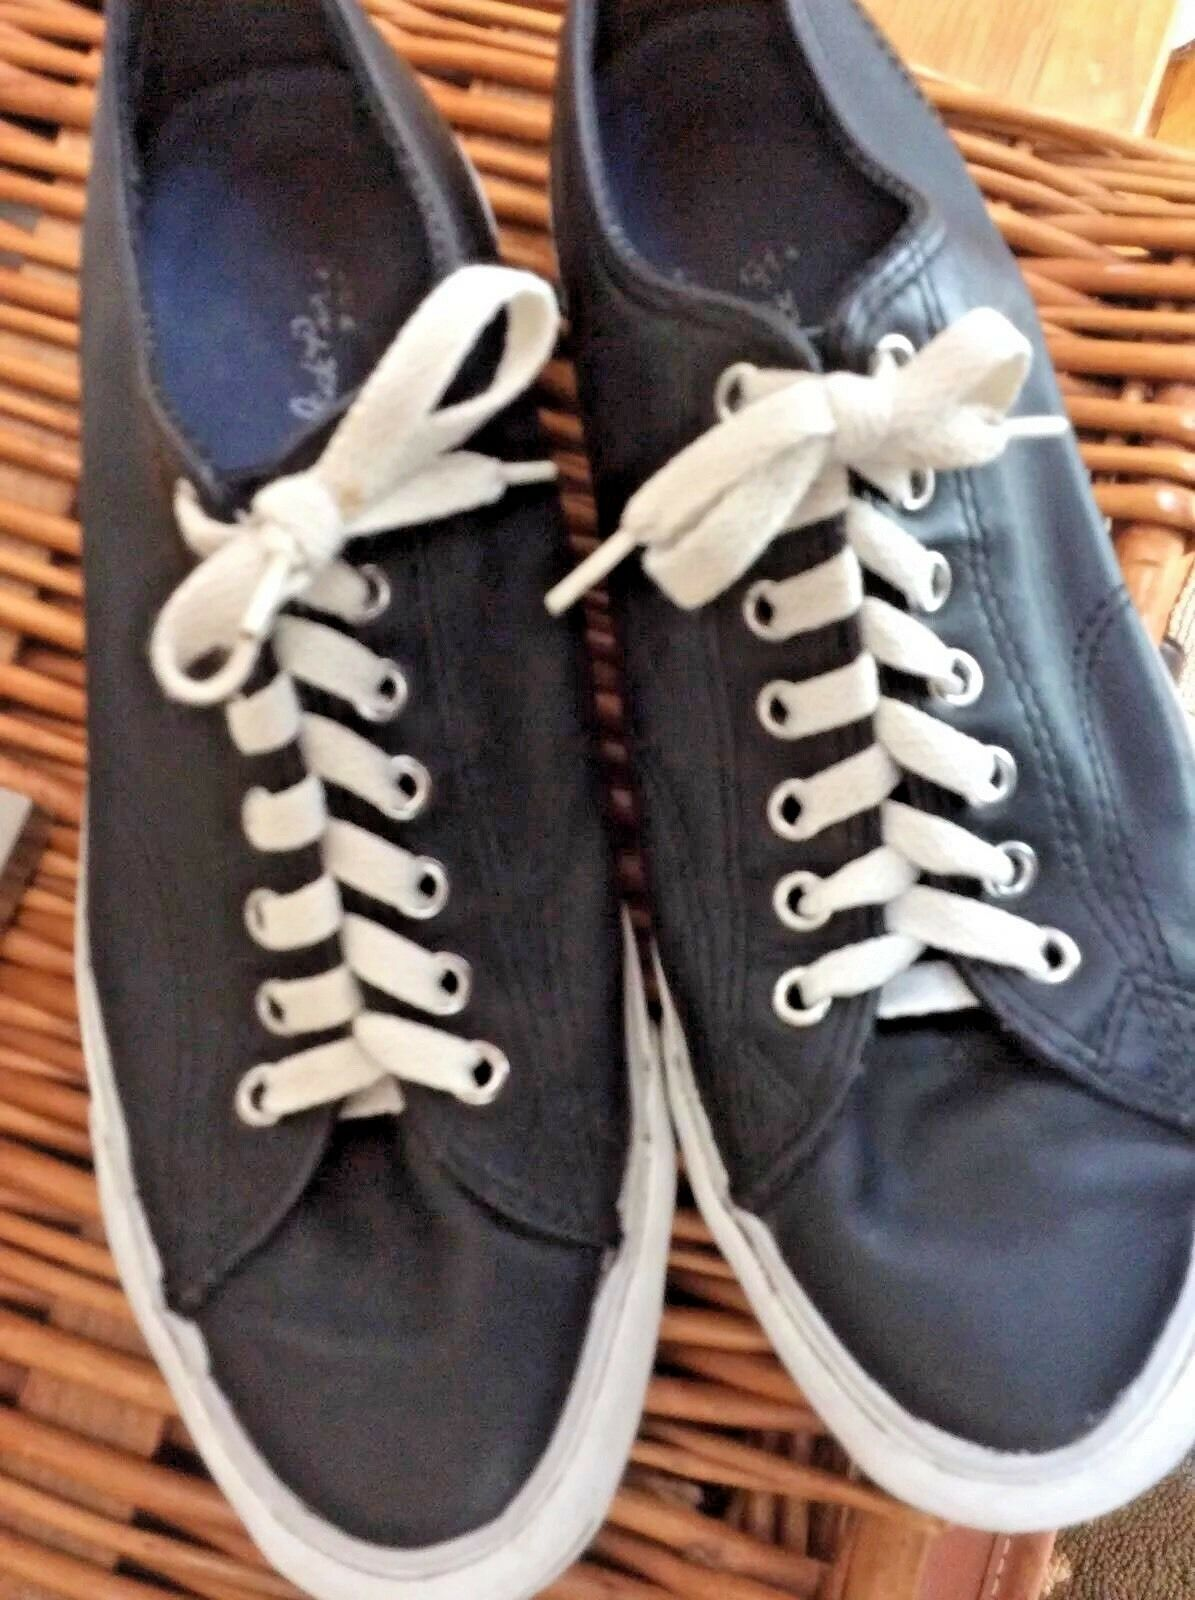 Converse Uomo 8 JACK PURCELL Converse  Sneakers BLACK LEATHER Tennis Schuhes NO TOE CAP 9.5 699126